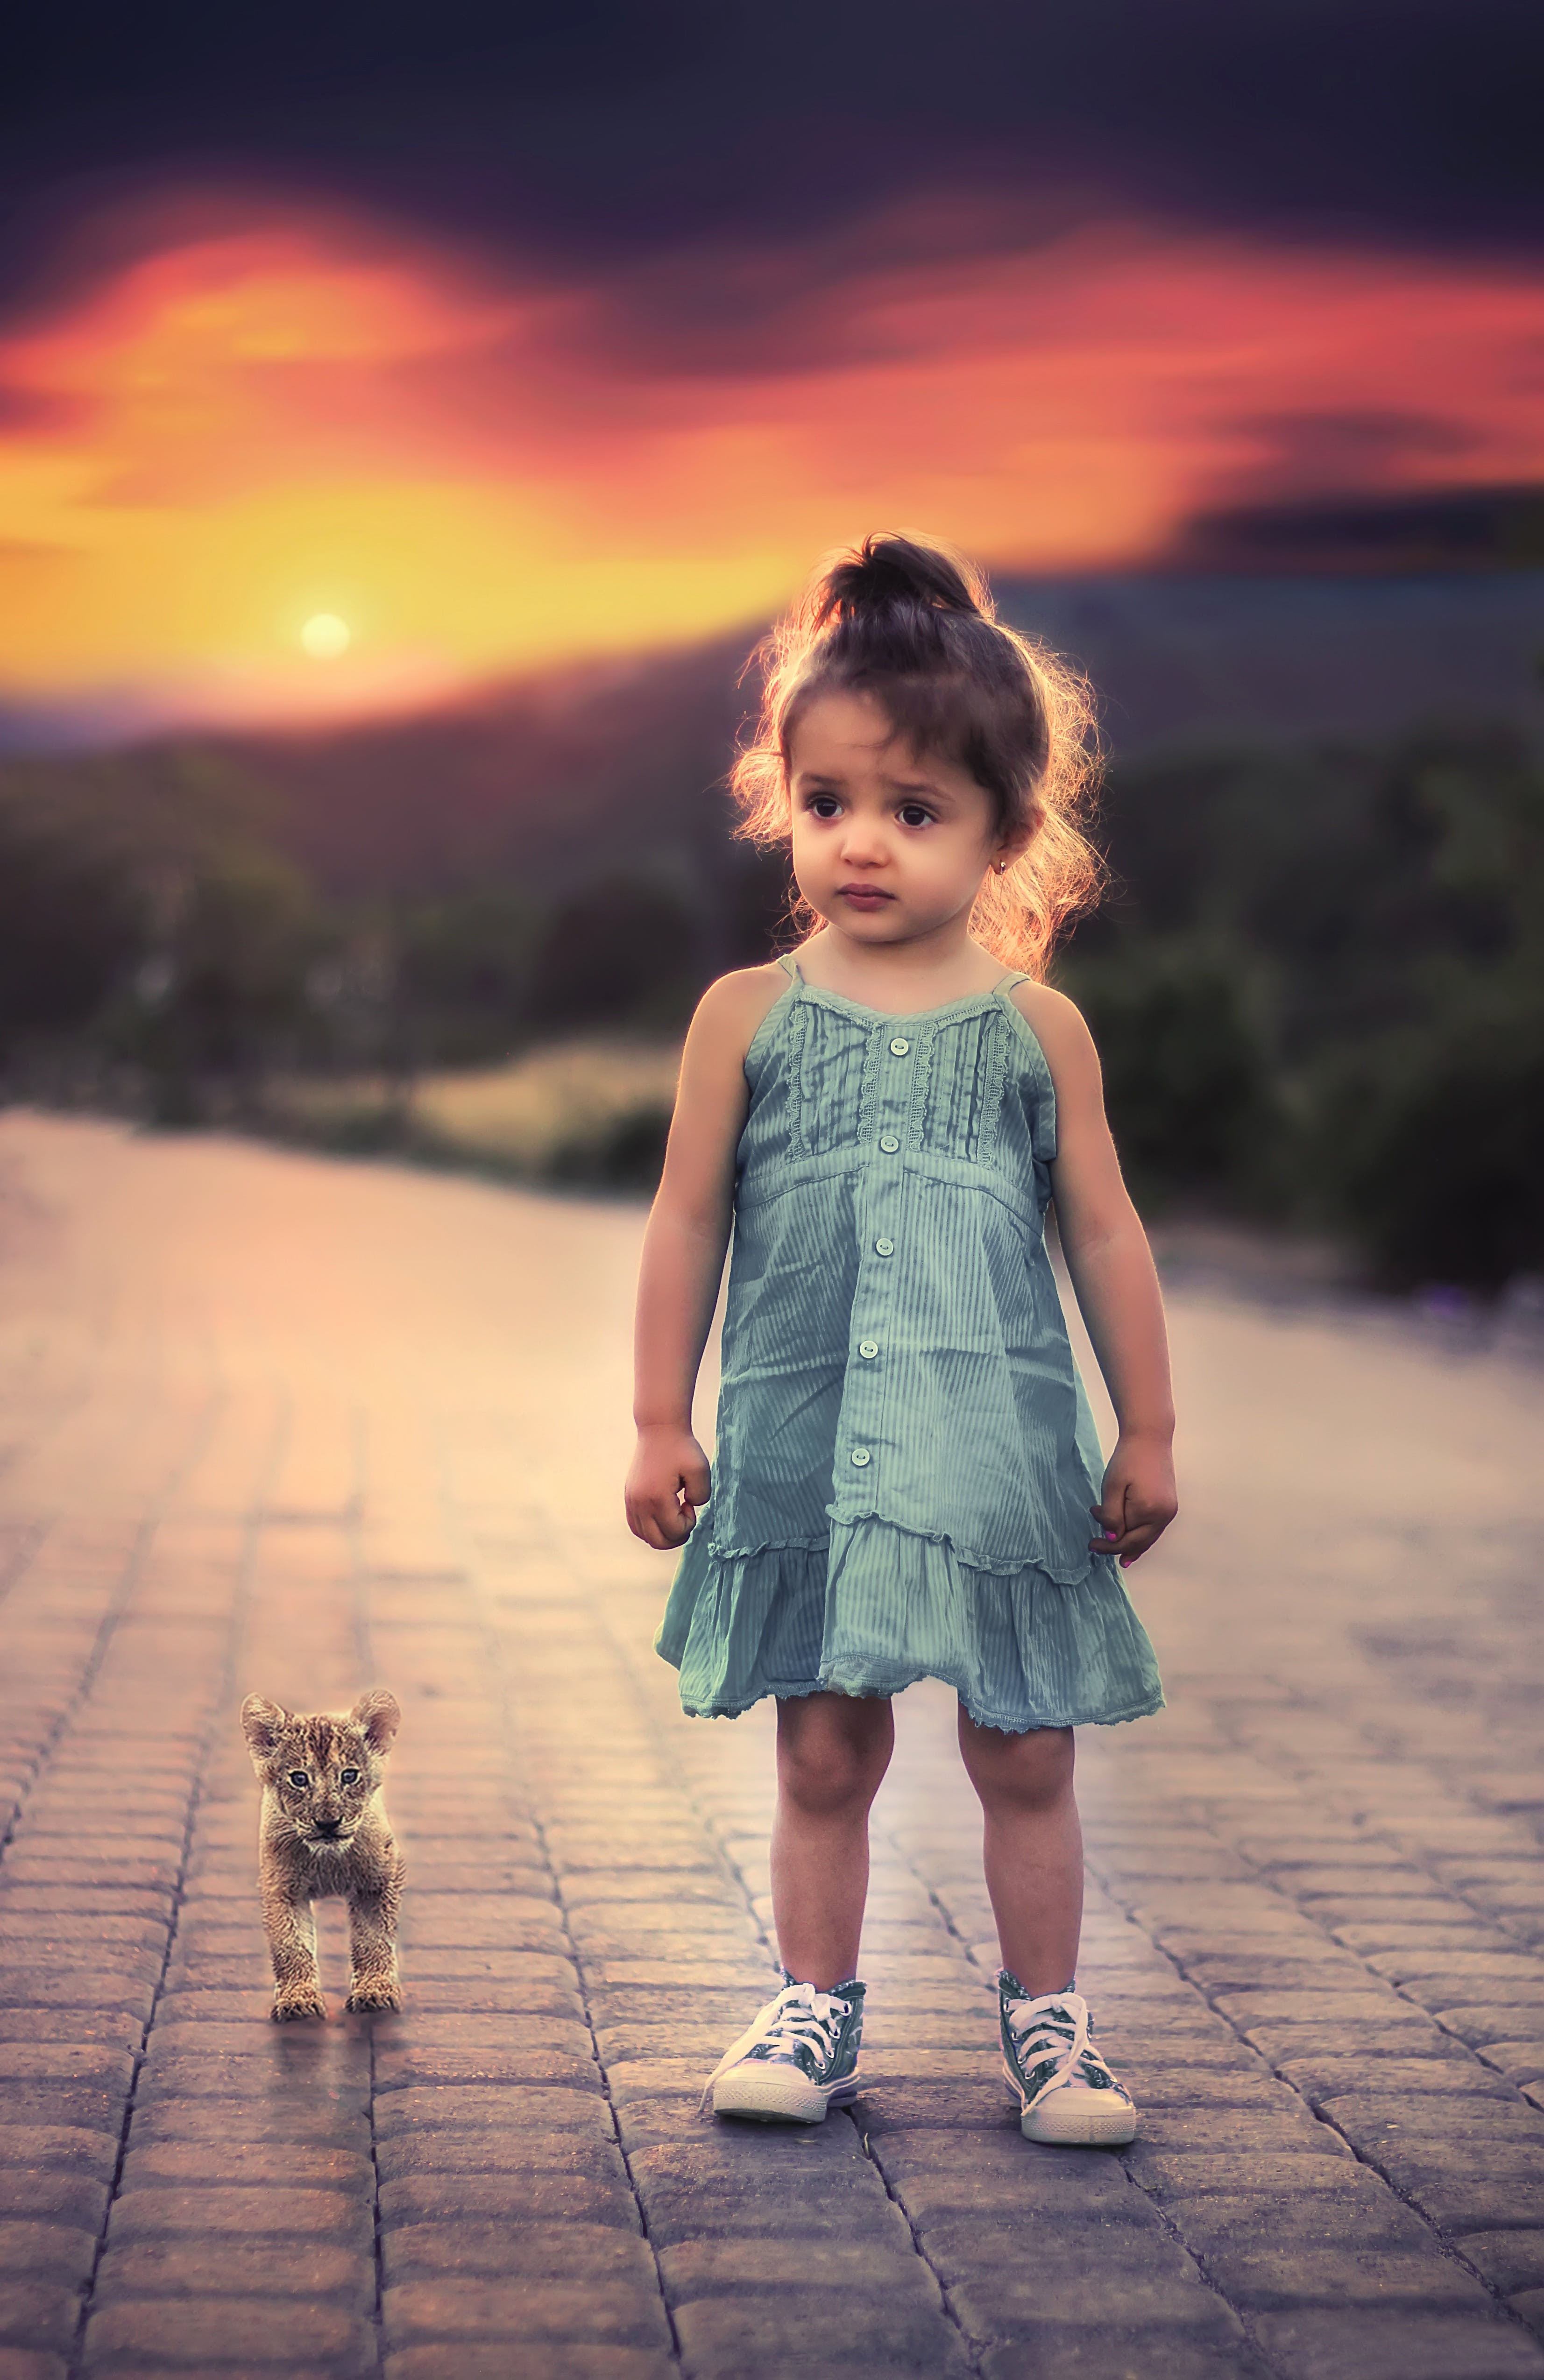 Toddler Girl Standing Beside Lion Cub